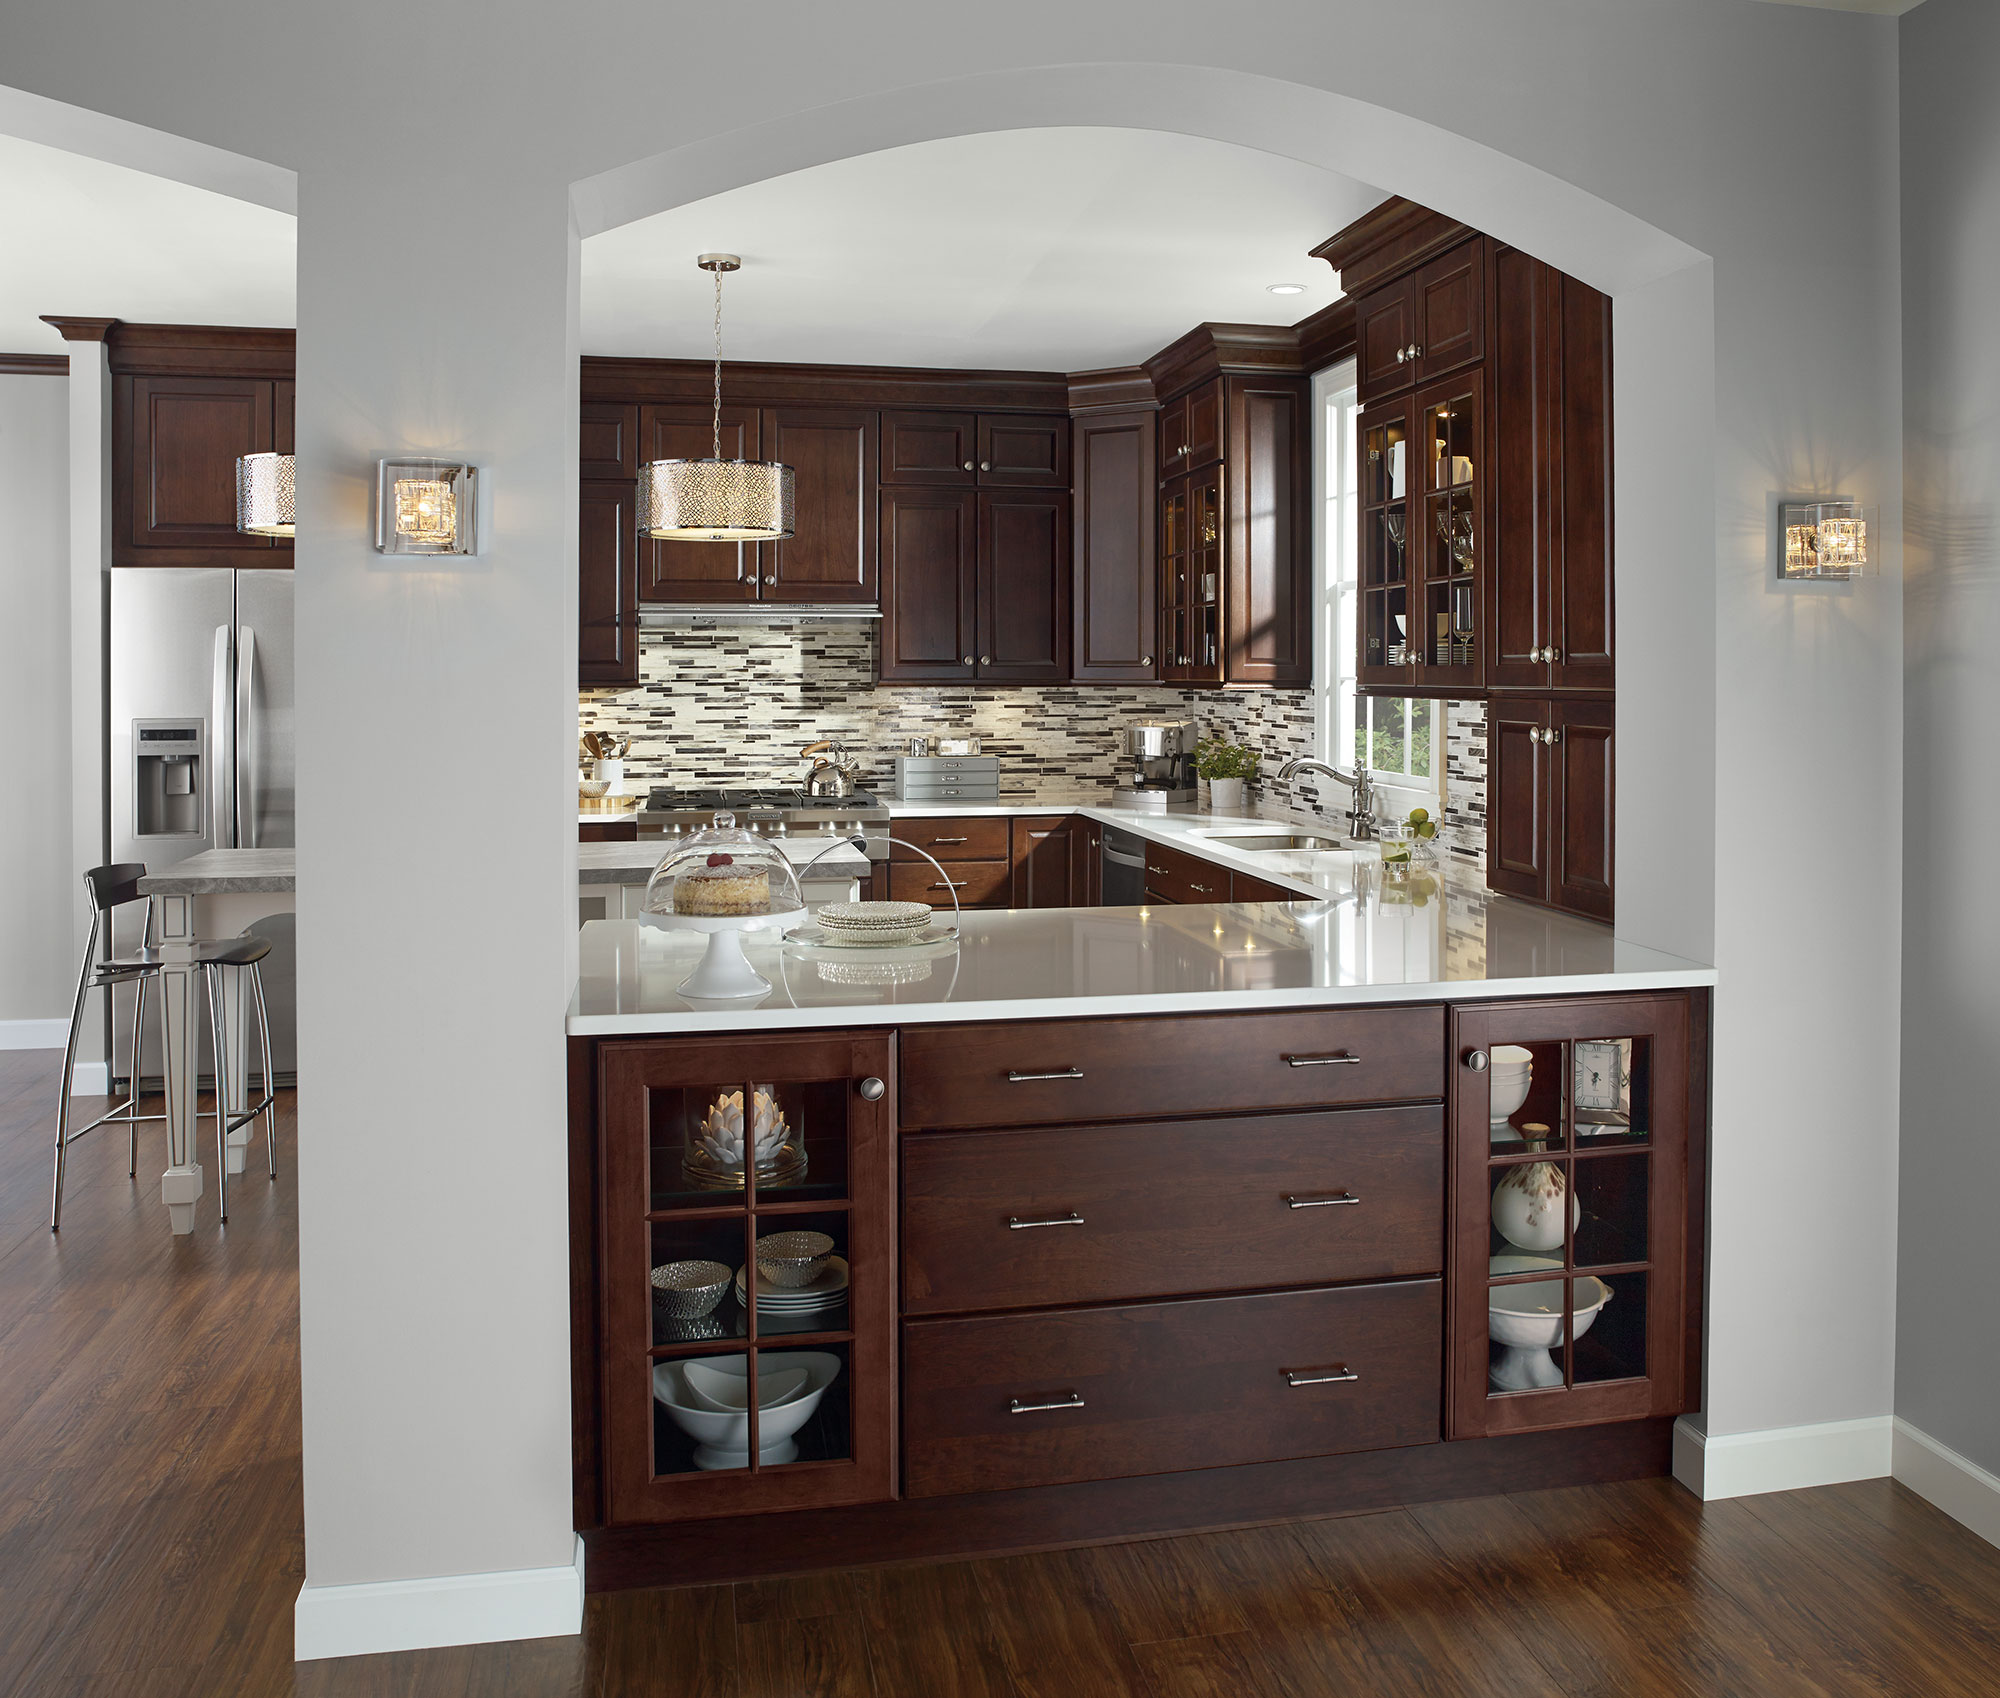 kitchen inspiration - cardell cabinetry